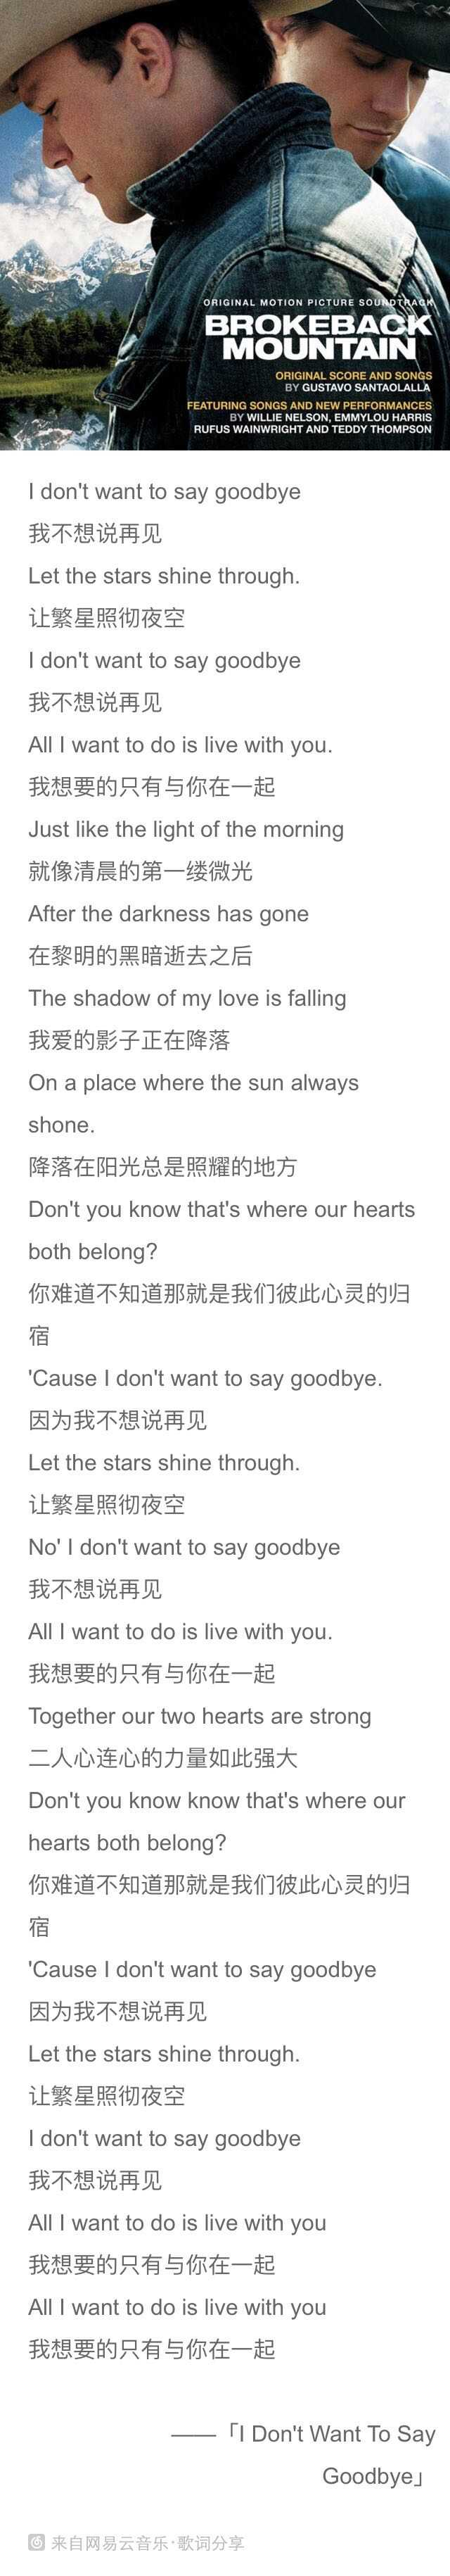 walking with you 歌詞 意味